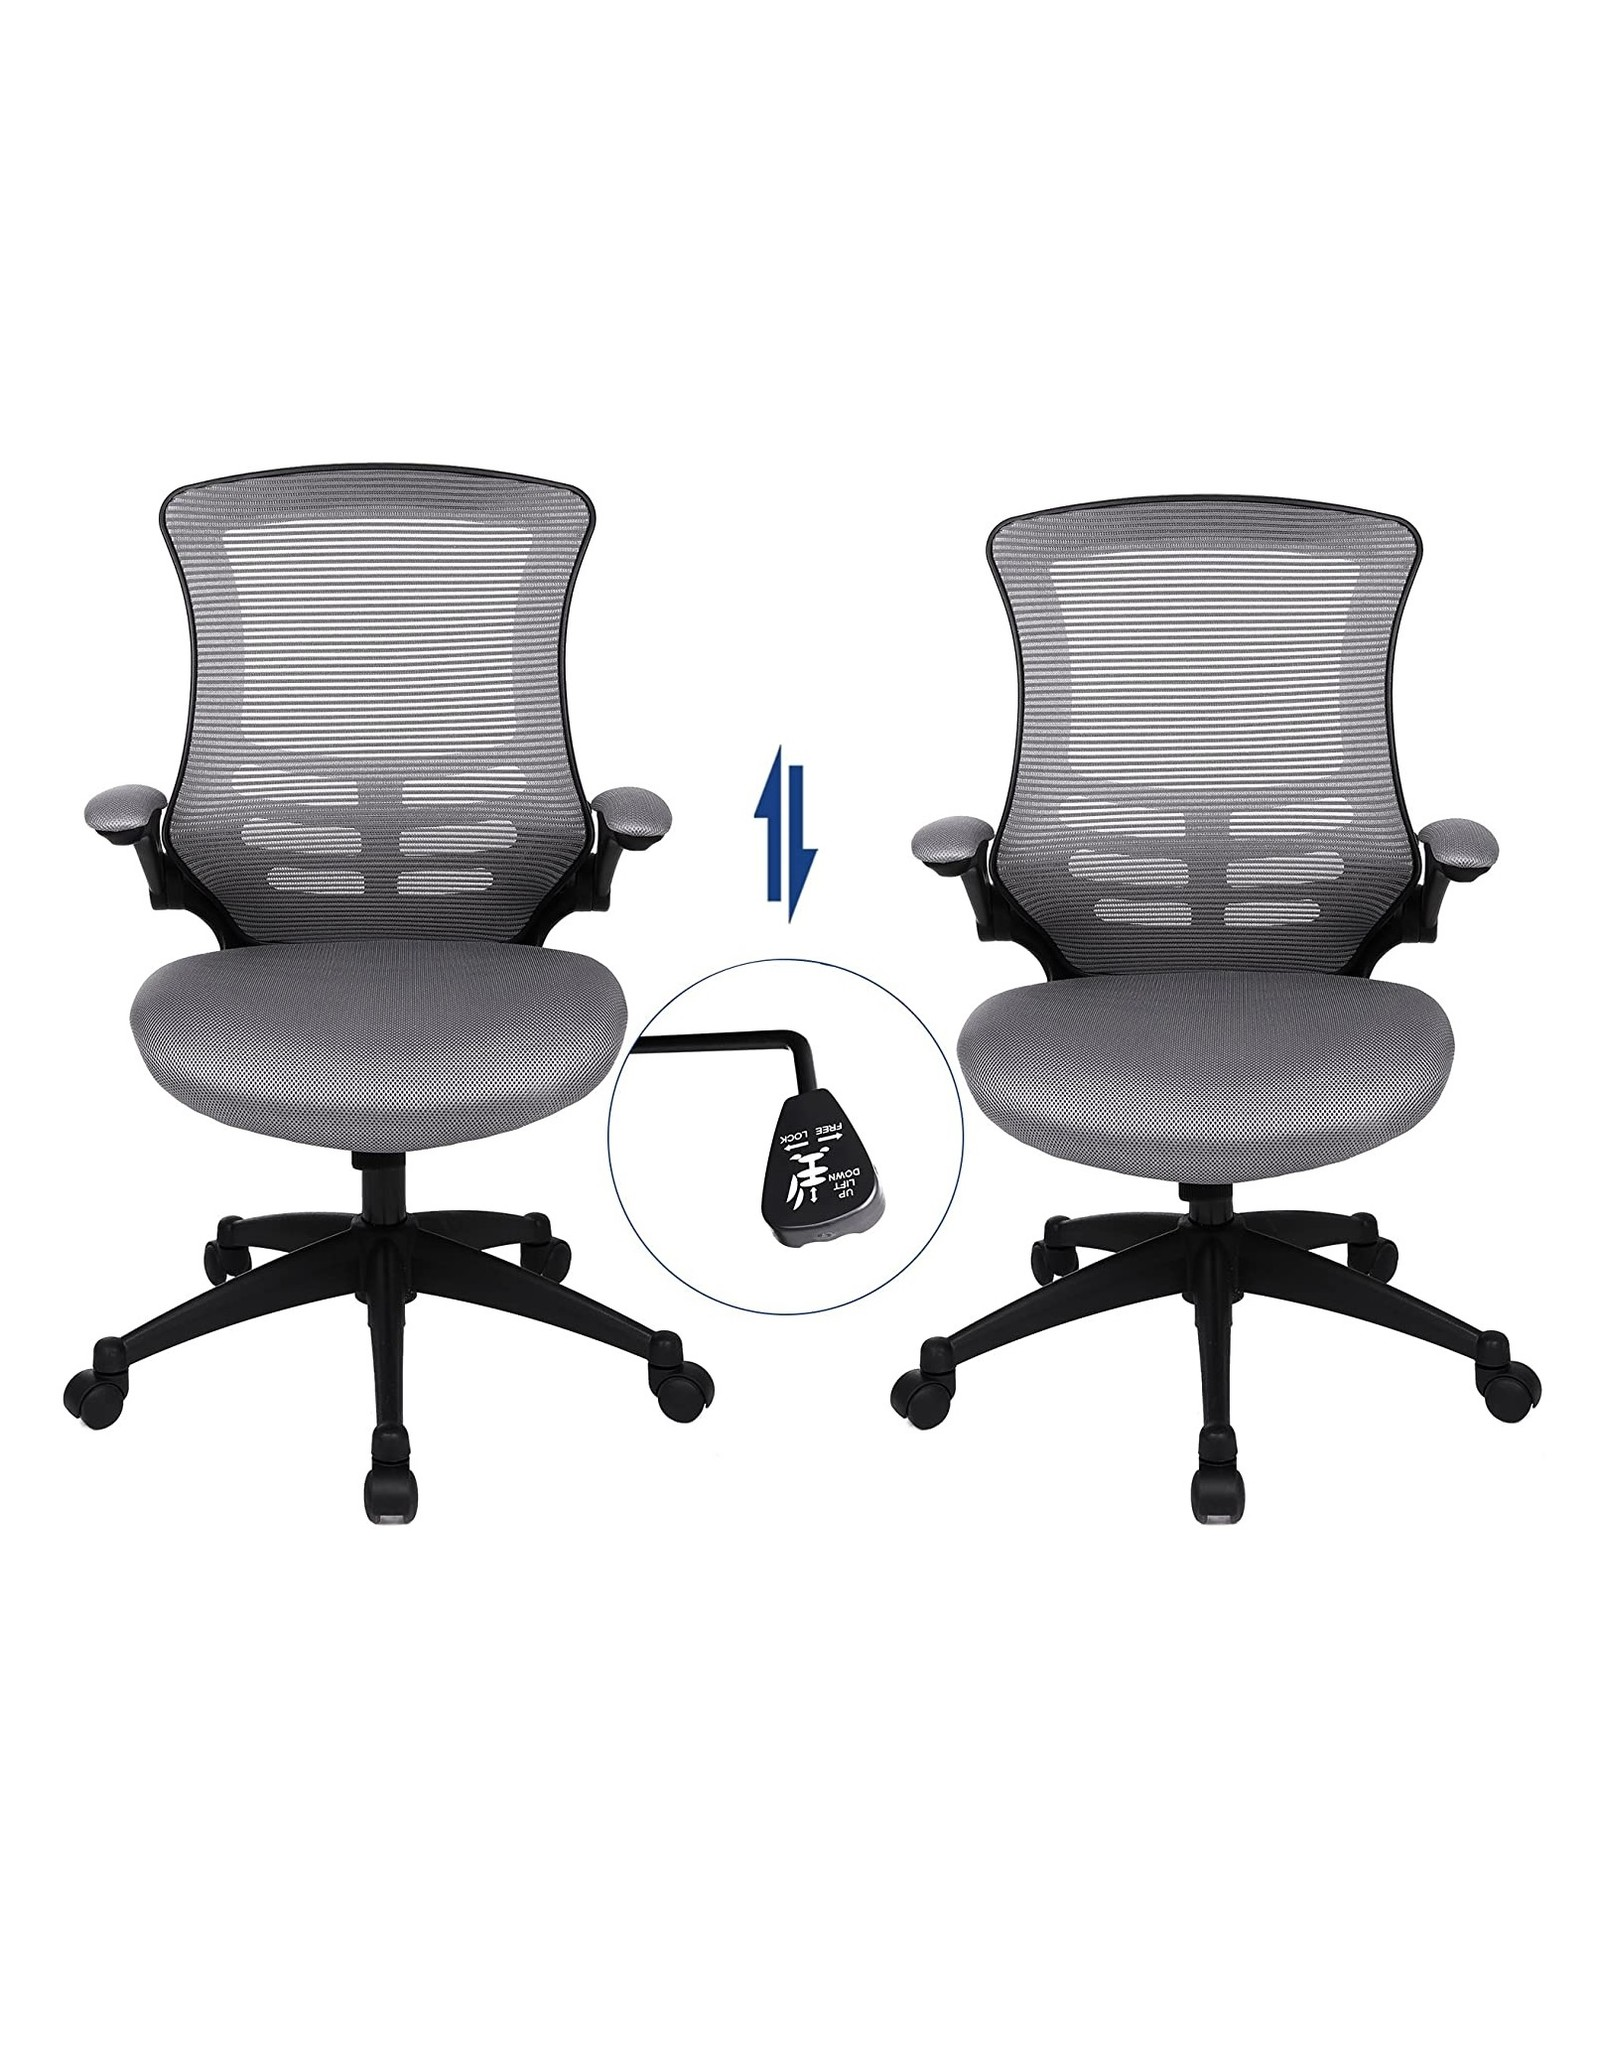 Parya Home Parya Home - Swivel chair with Foldable Armrest